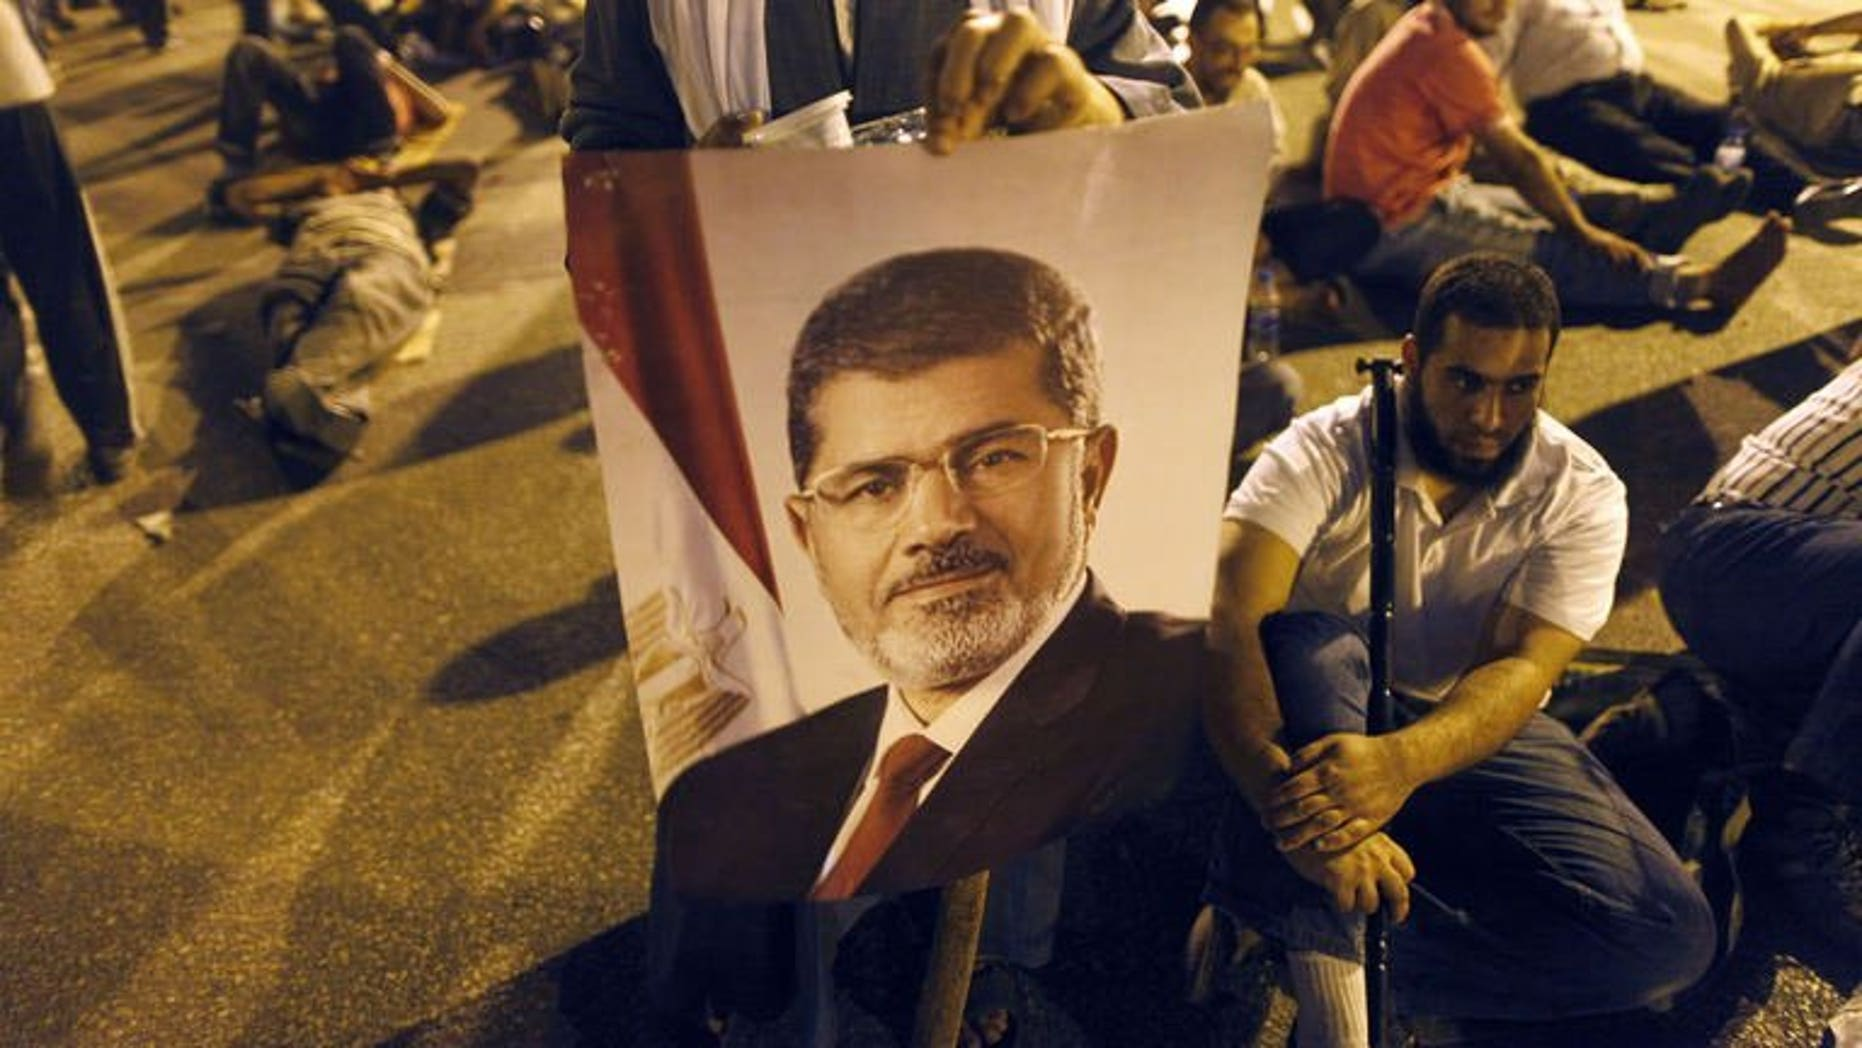 A supporter of the Muslim Brotherhood holds the portraits of deposed president Mohamed Morsi during a rally outside Cairo's Rabaa al-Adawiya mosque late on July 7, 2013. Egypt's prosecution ordered the closure of the Cairo headquarters of the Muslim Brotherhood's Freedom and Justice Party after police found weapons inside it on Monday, a security official said.